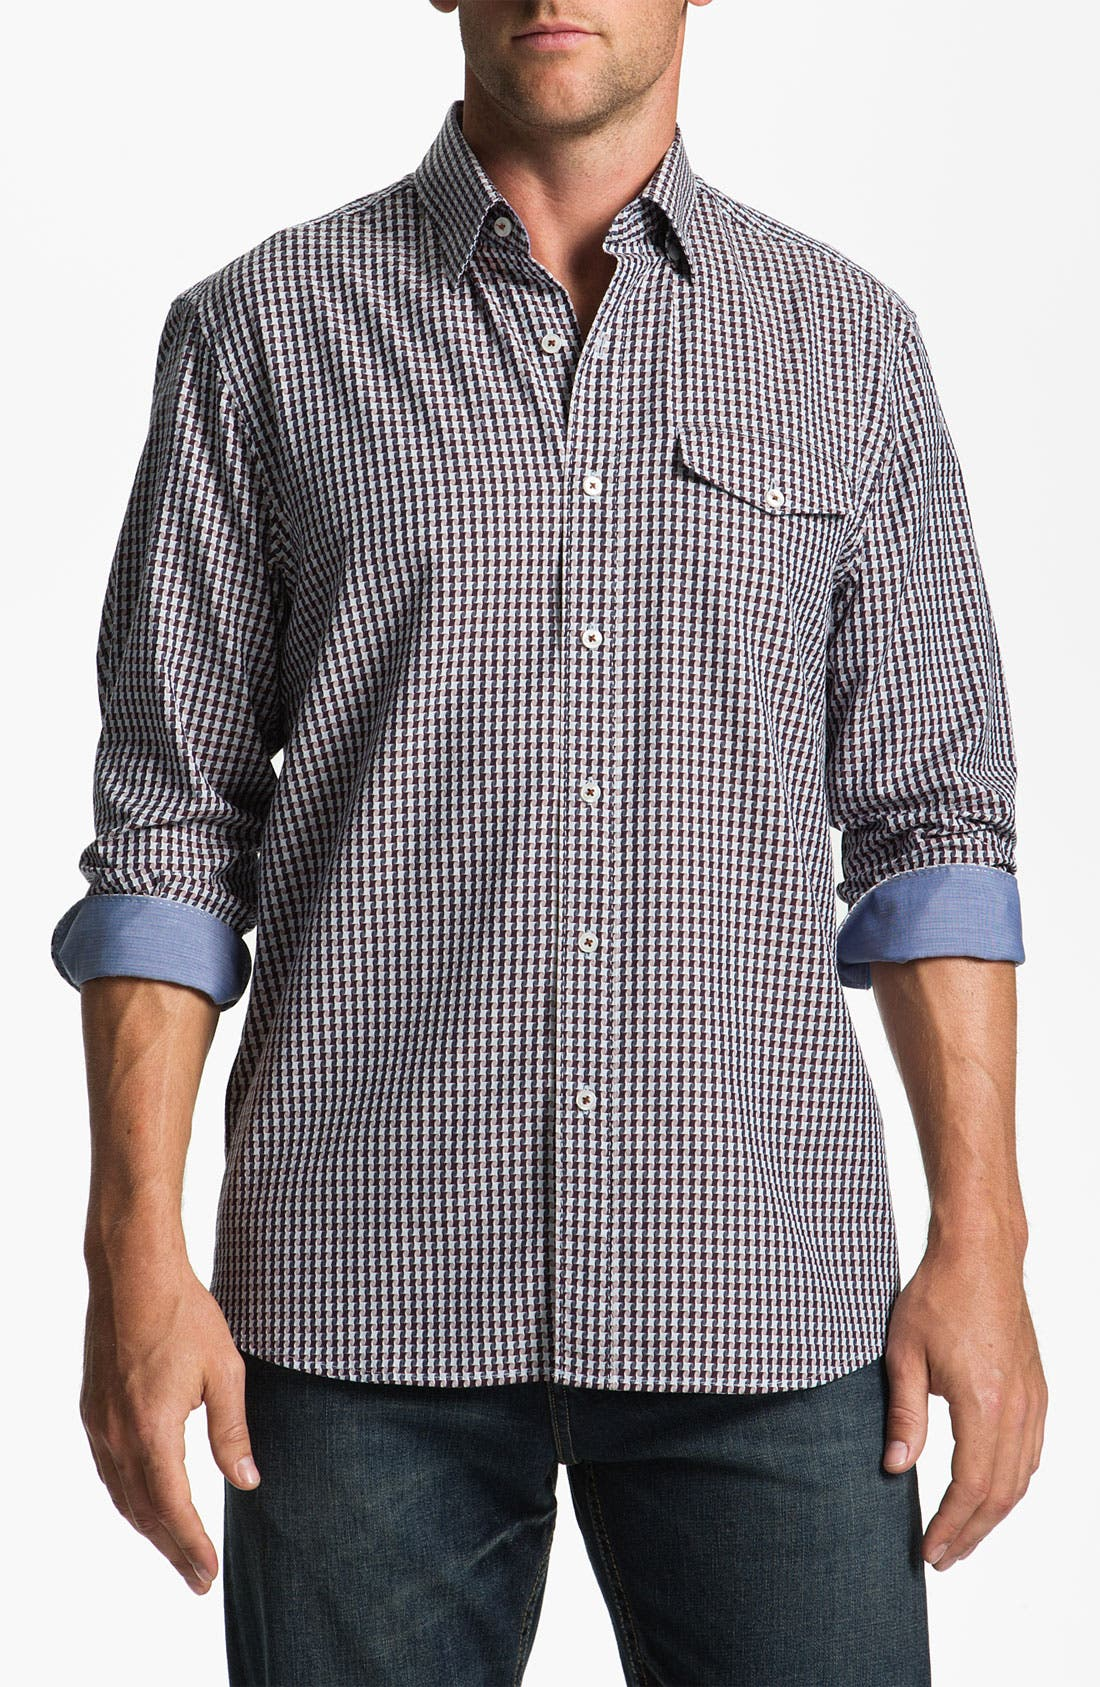 Alternate Image 1 Selected - Tommy Bahama 'Lost 'N Hounds' Sport Shirt